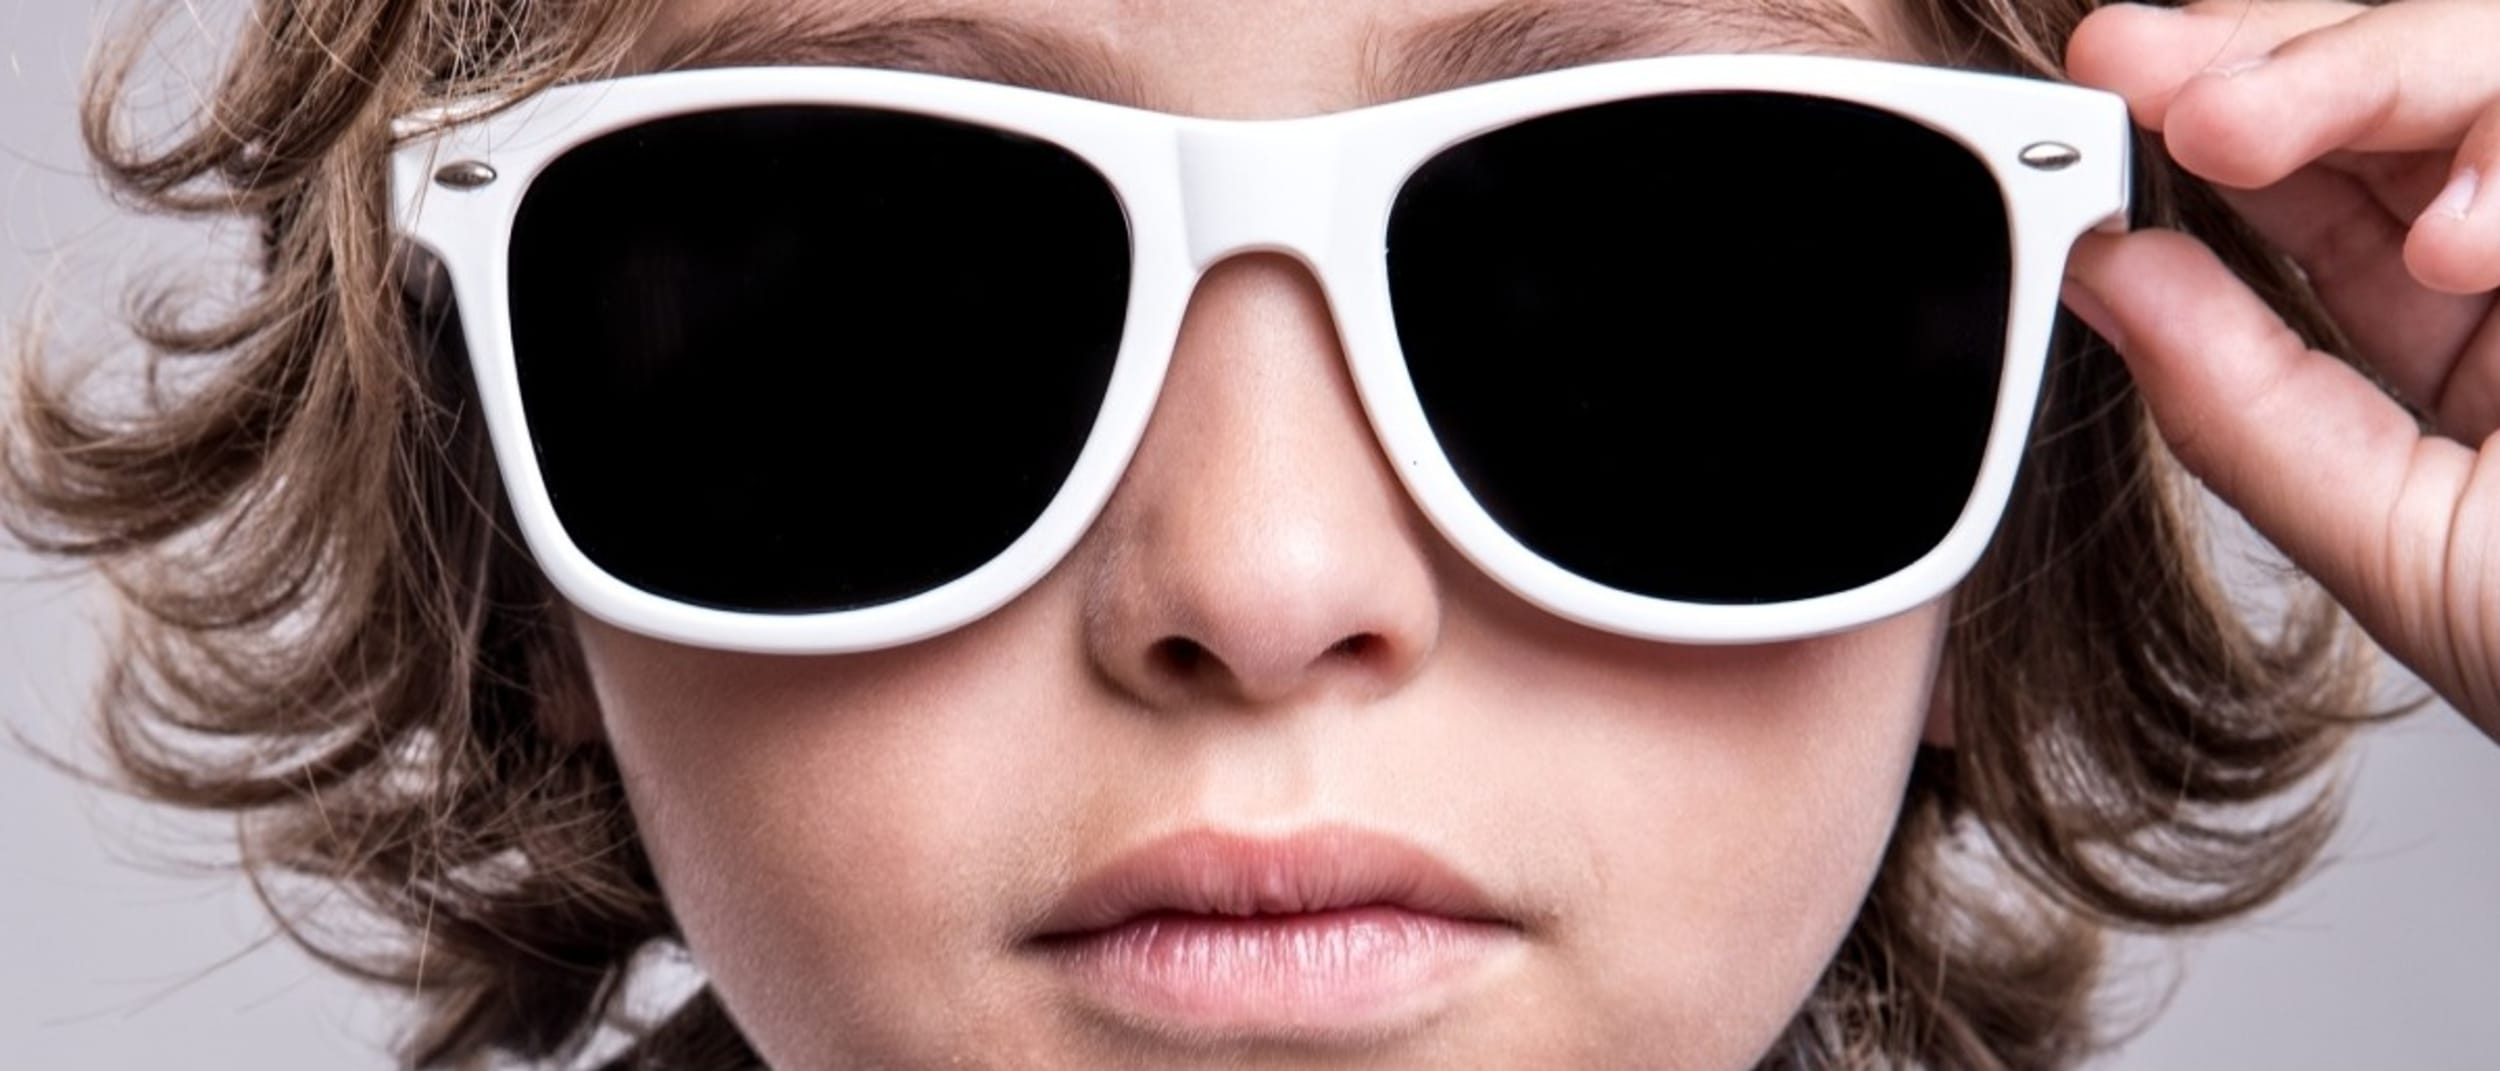 Lenspro: Free kids sunnies